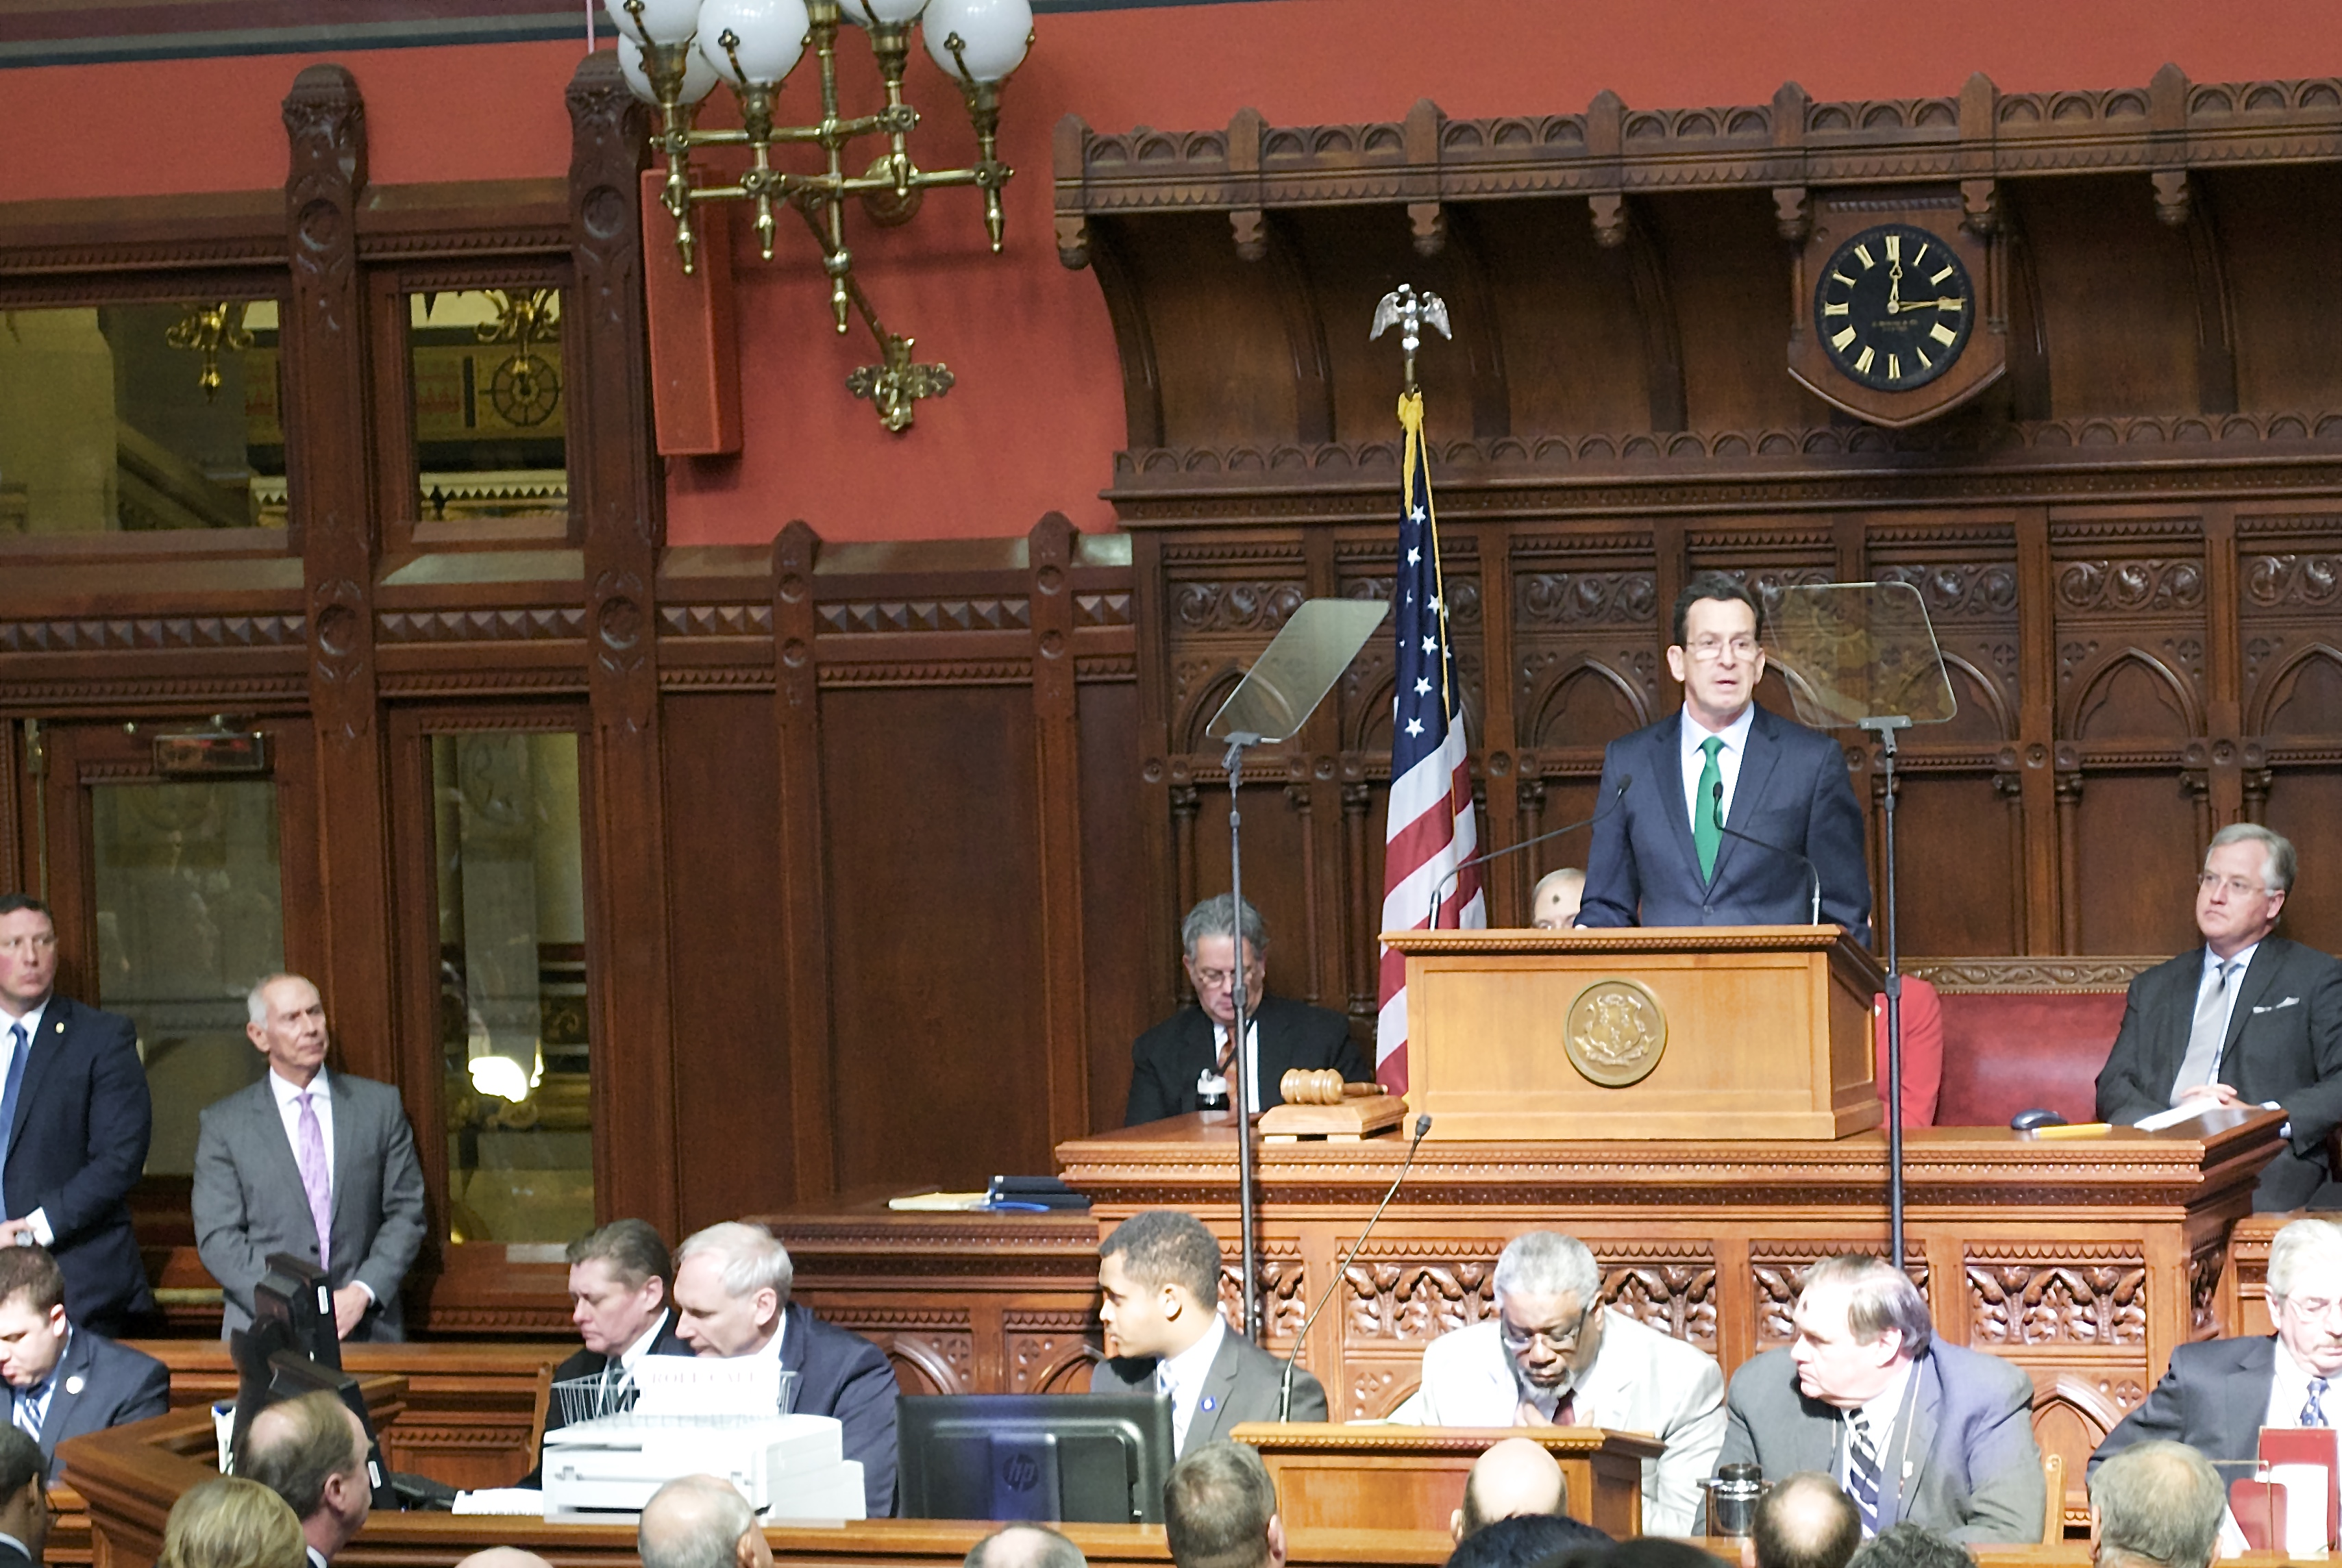 Malloy would tax business, cut services to balance budget